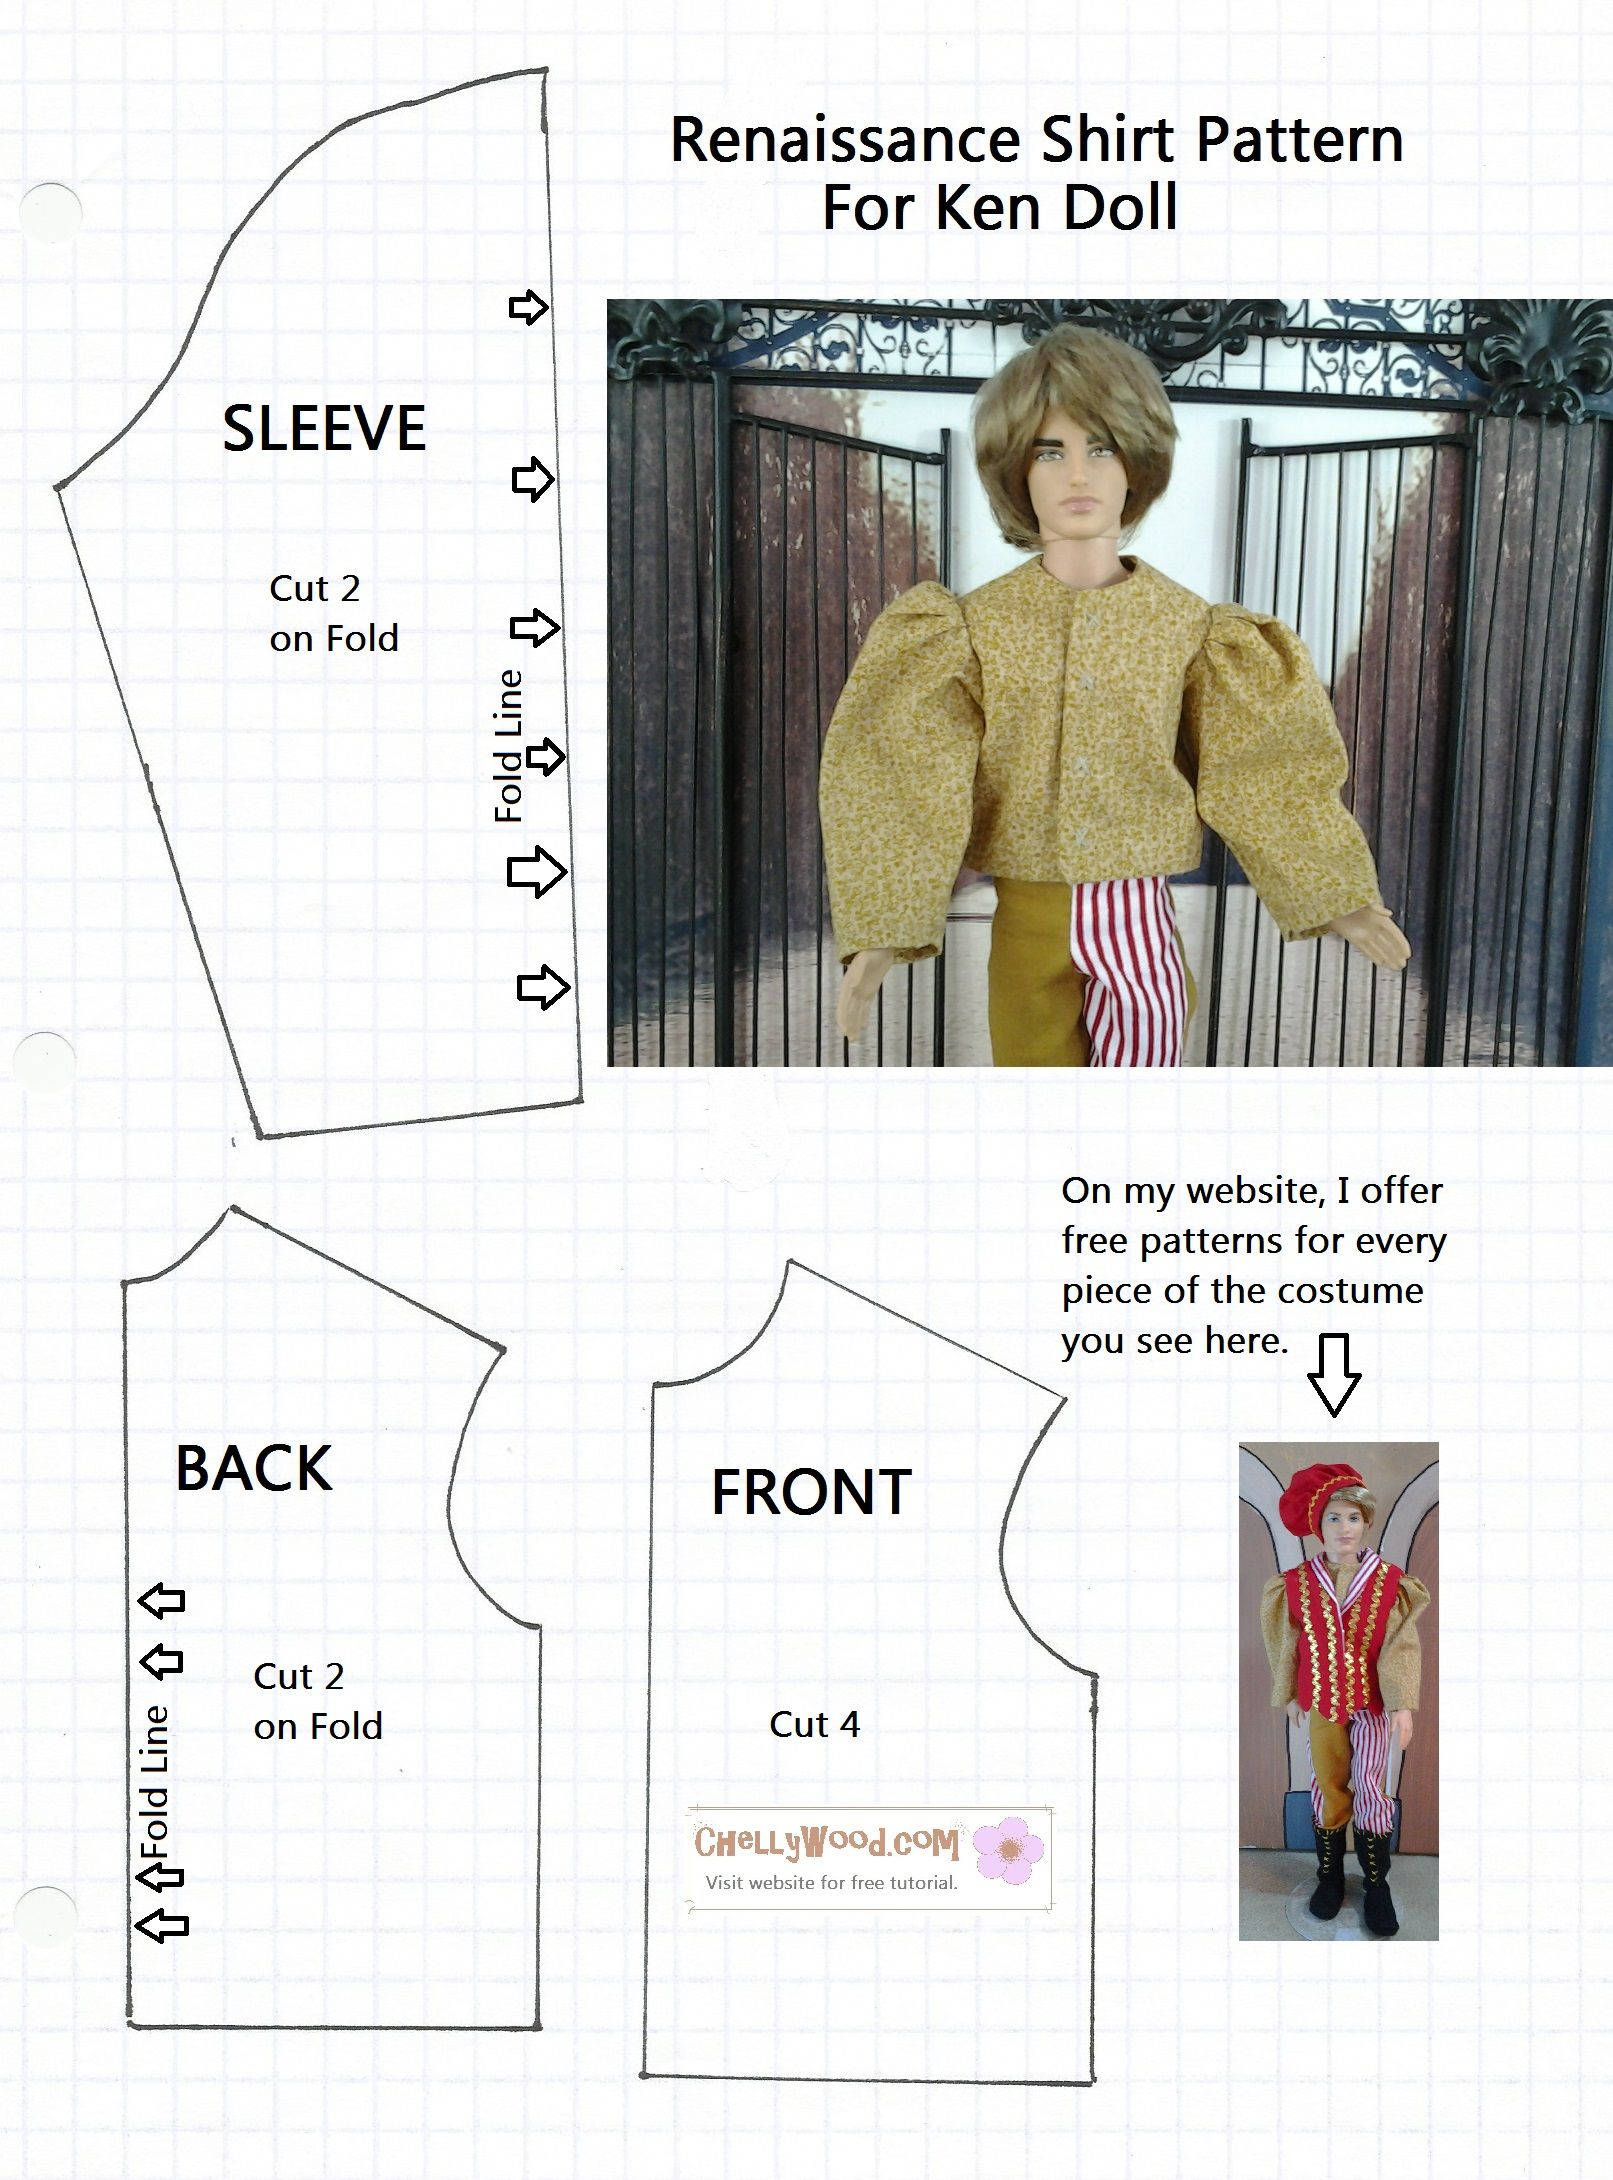 This is a pattern for an easy-to-sew Renaissance shirt pattern for ...